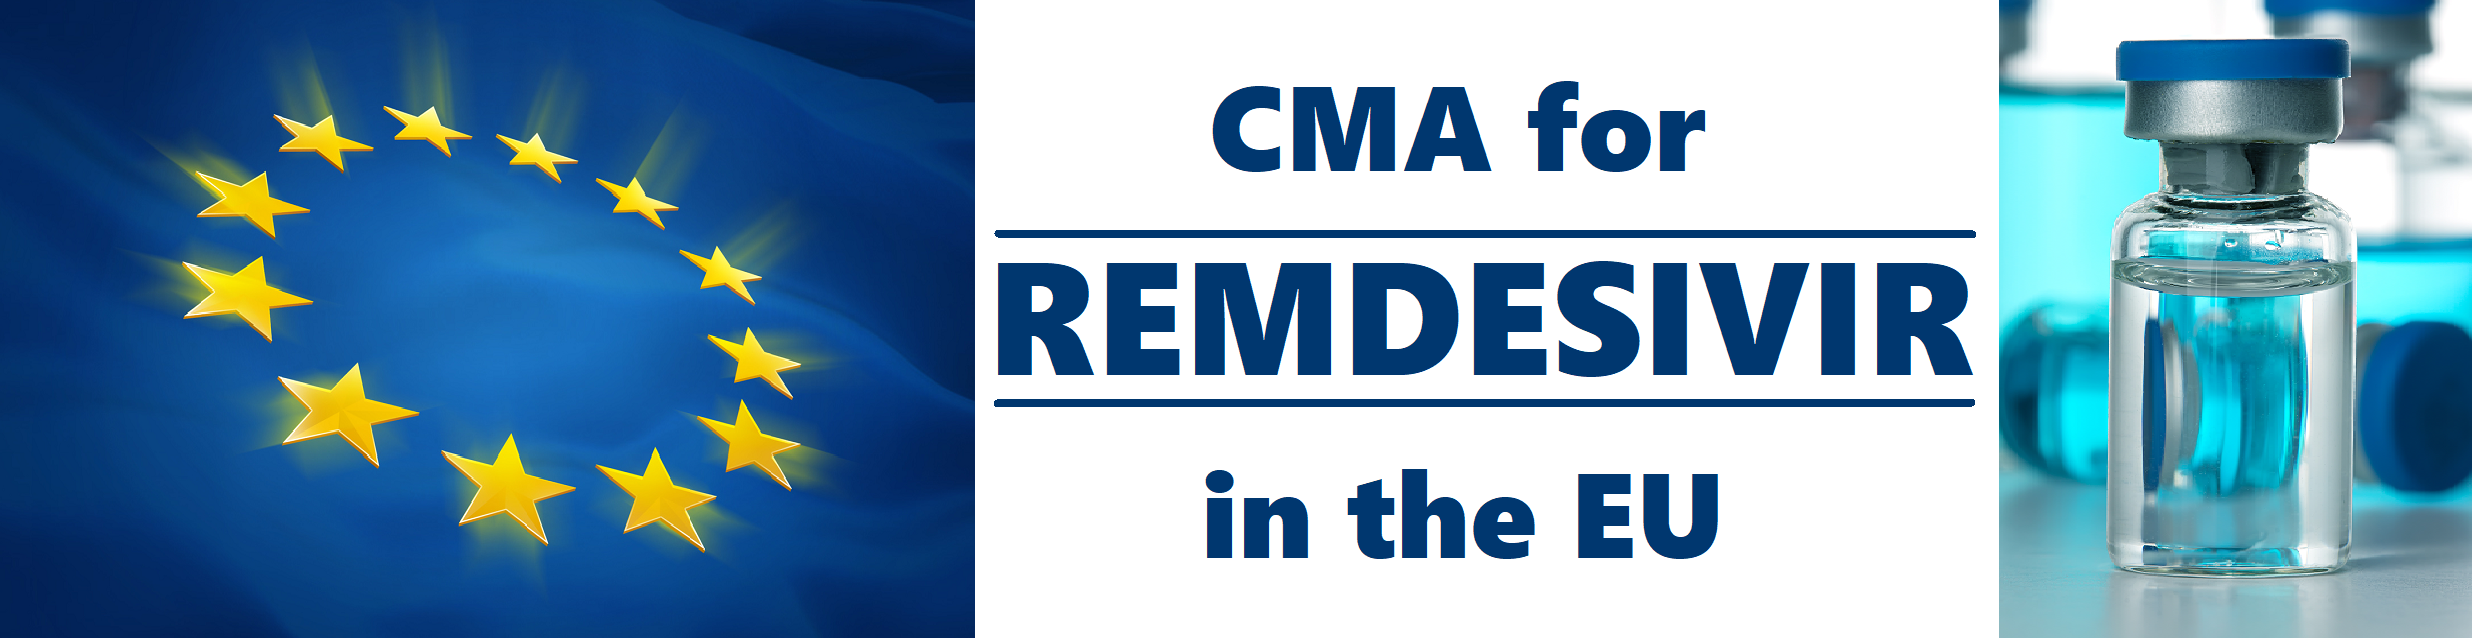 CMA for Remdesivir in the EU